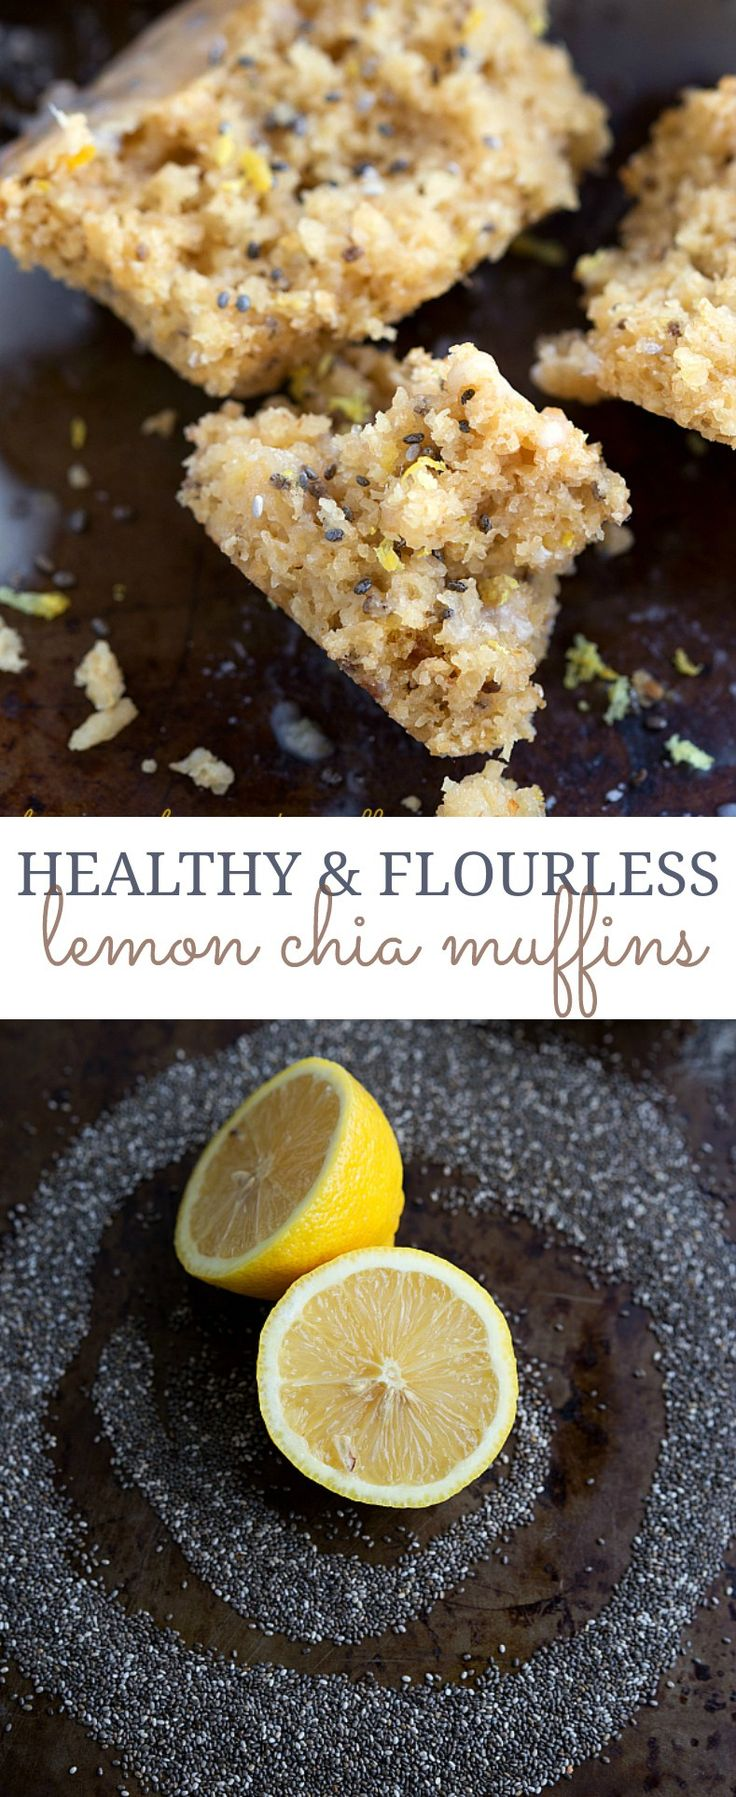 Gluten-free and healthy lemon chia seed muffins. The chia seeds could also be replaced with poppyseeds for a delicious traditional lemon poppyseed muffin. These muffins are free of refined white fl…